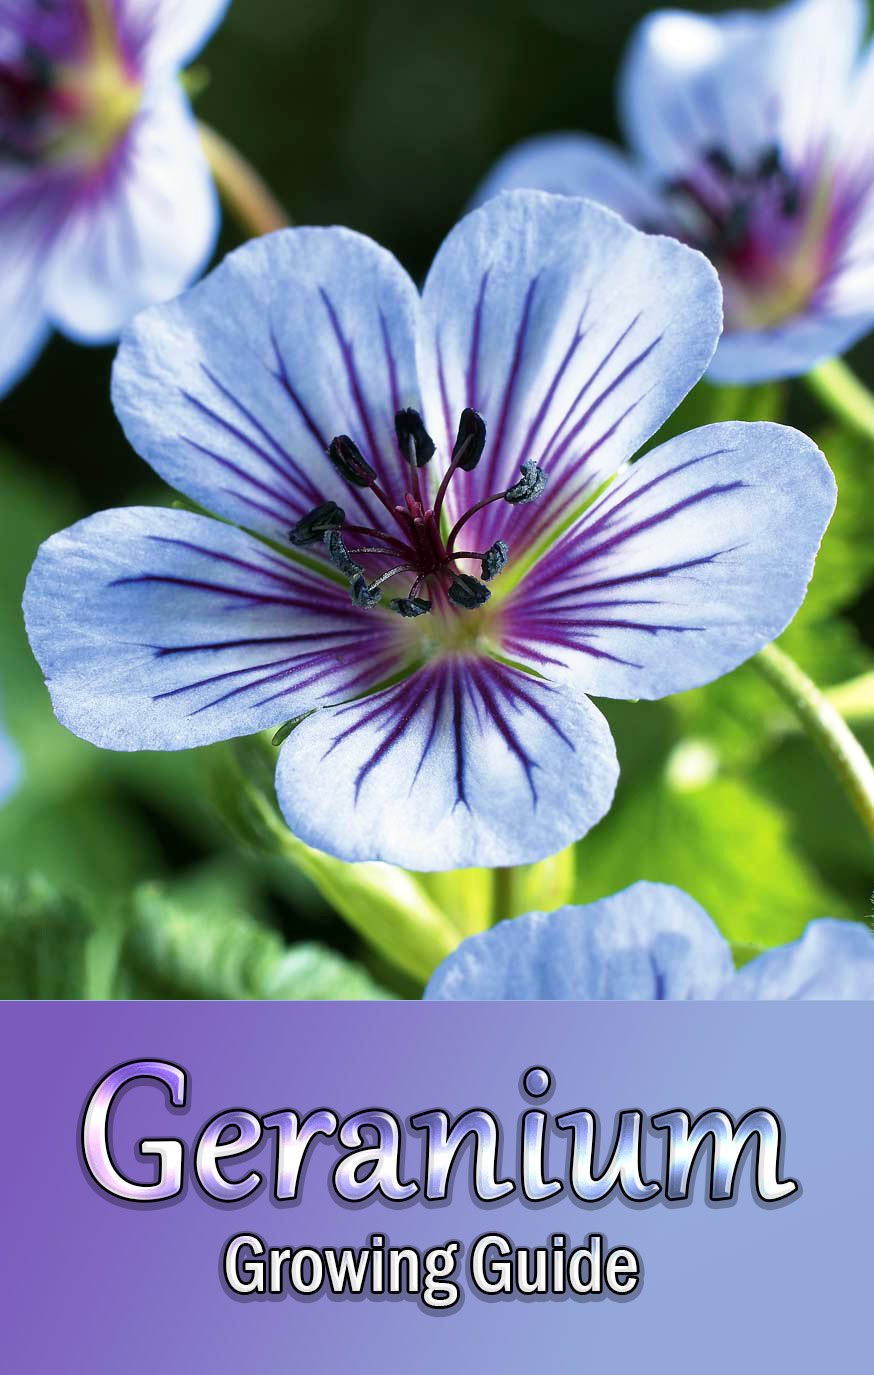 Geranium – Growing Guide